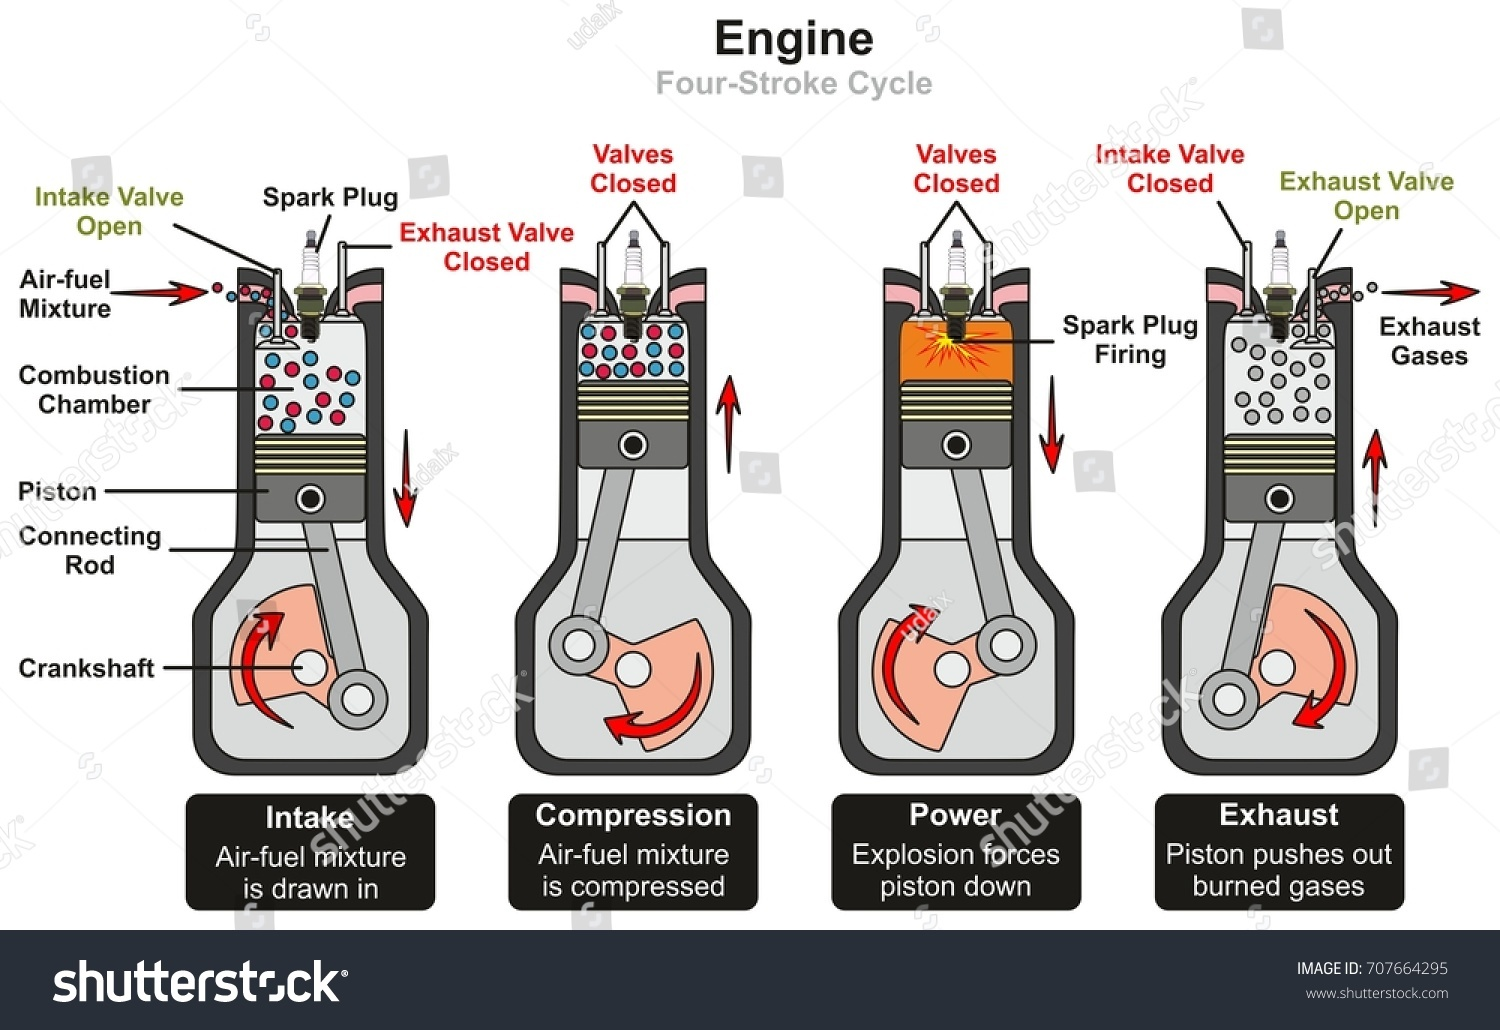 Engine Four Stroke Cycle Infographic Diagram Stock Vector (2018 ...